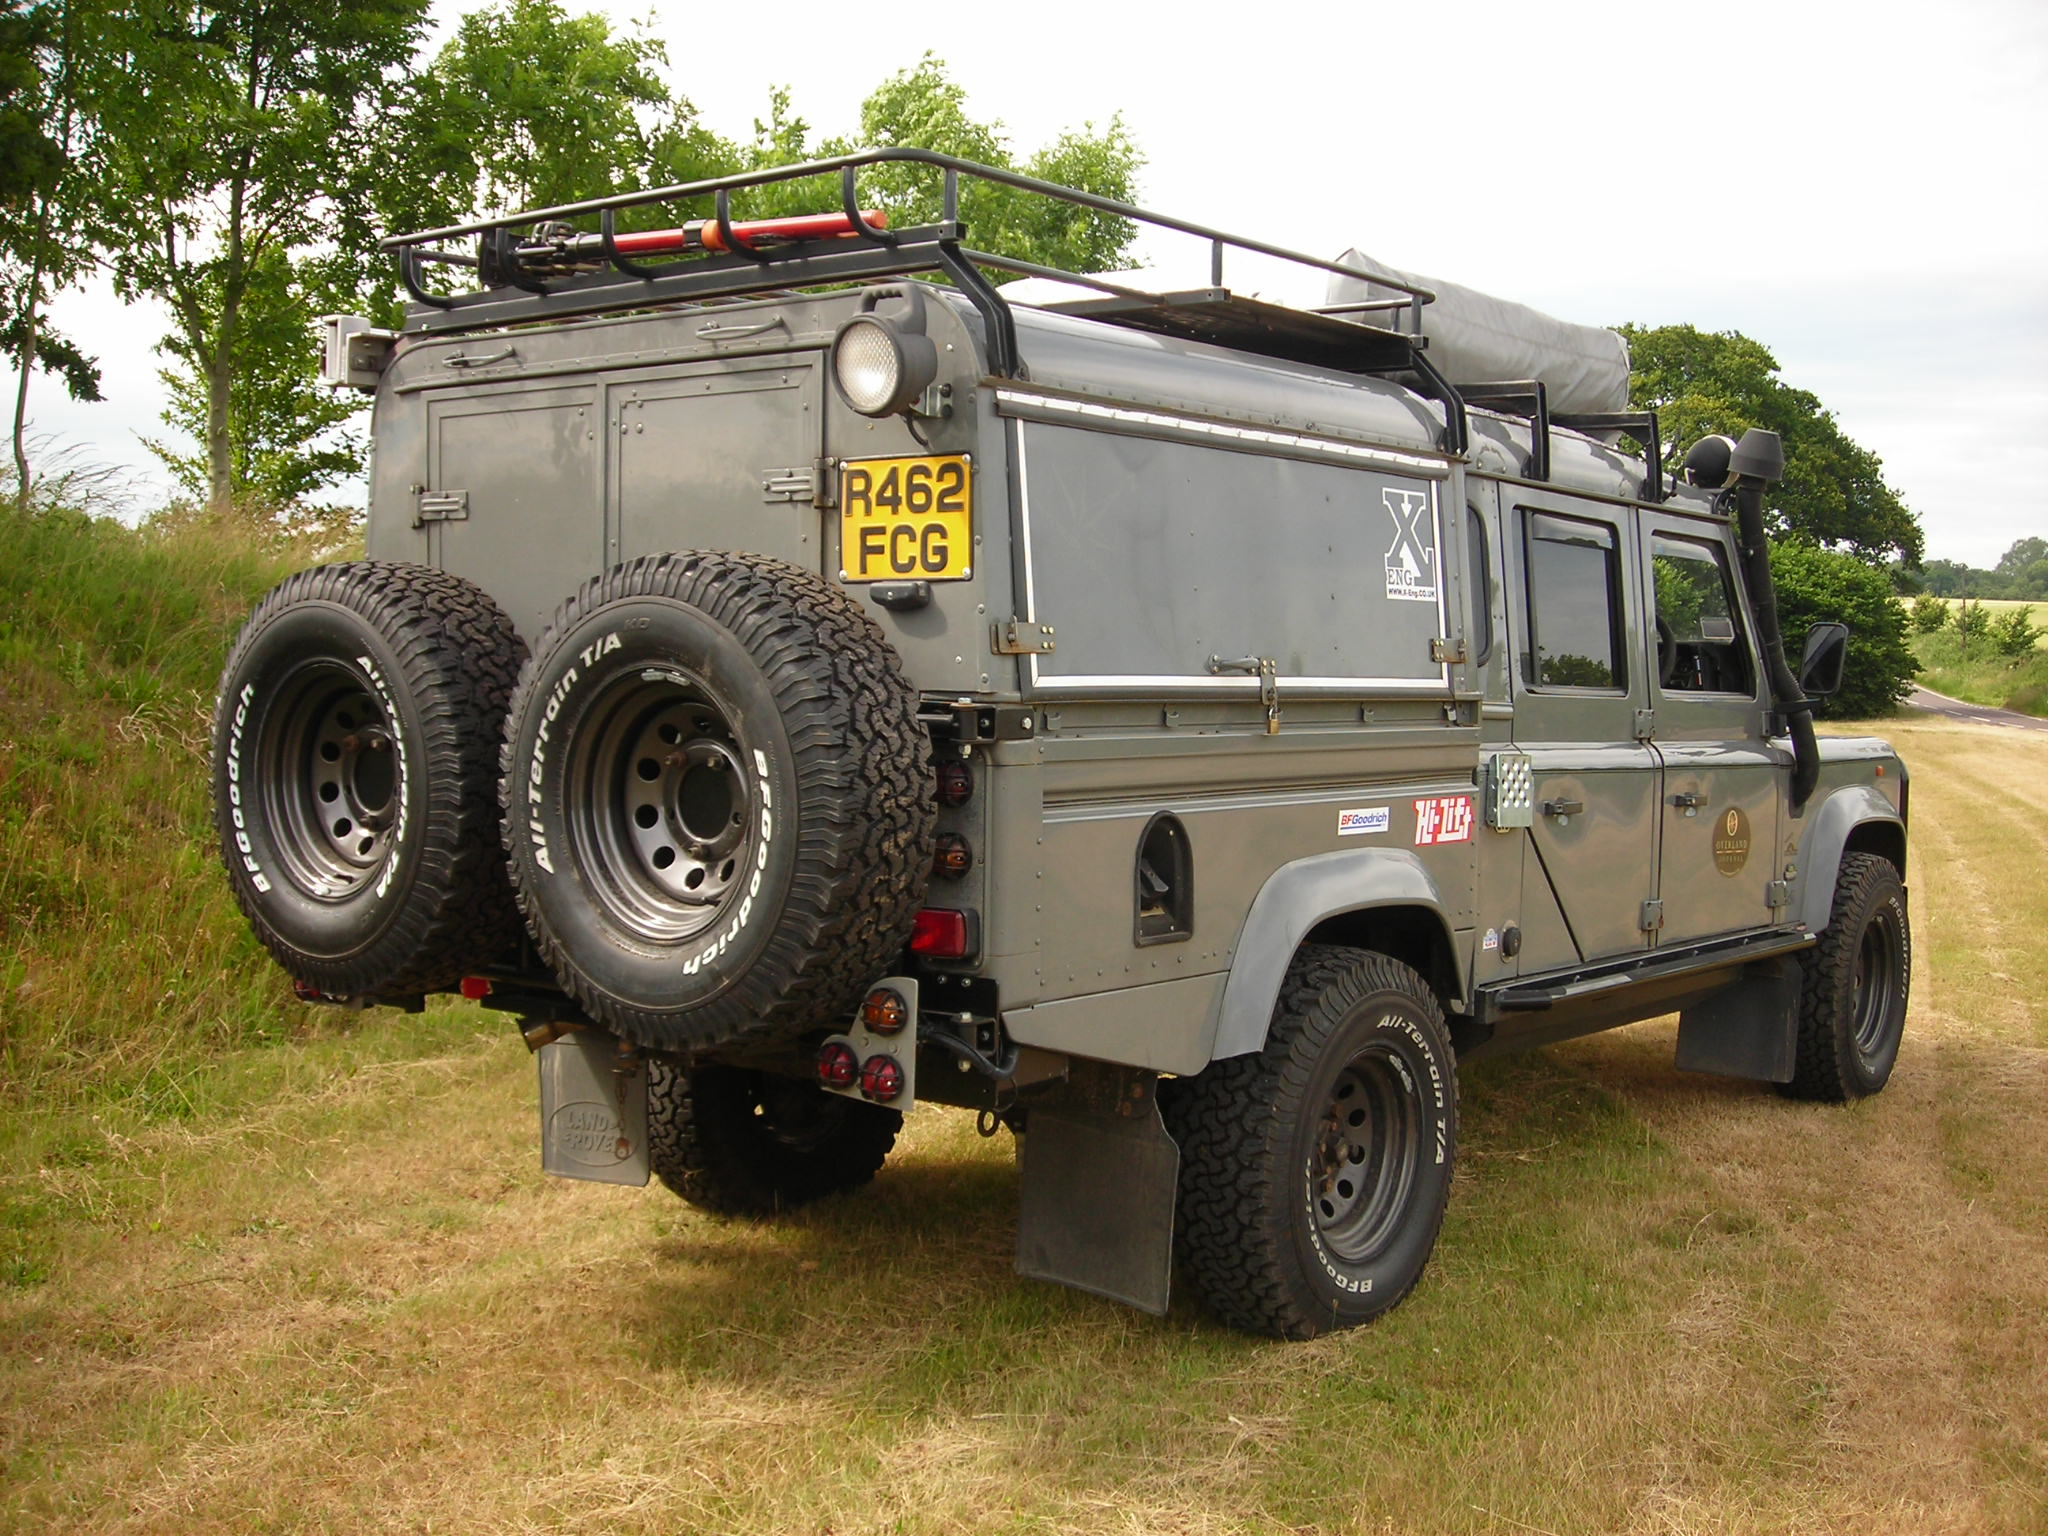 Land-rover 130 photo - 3